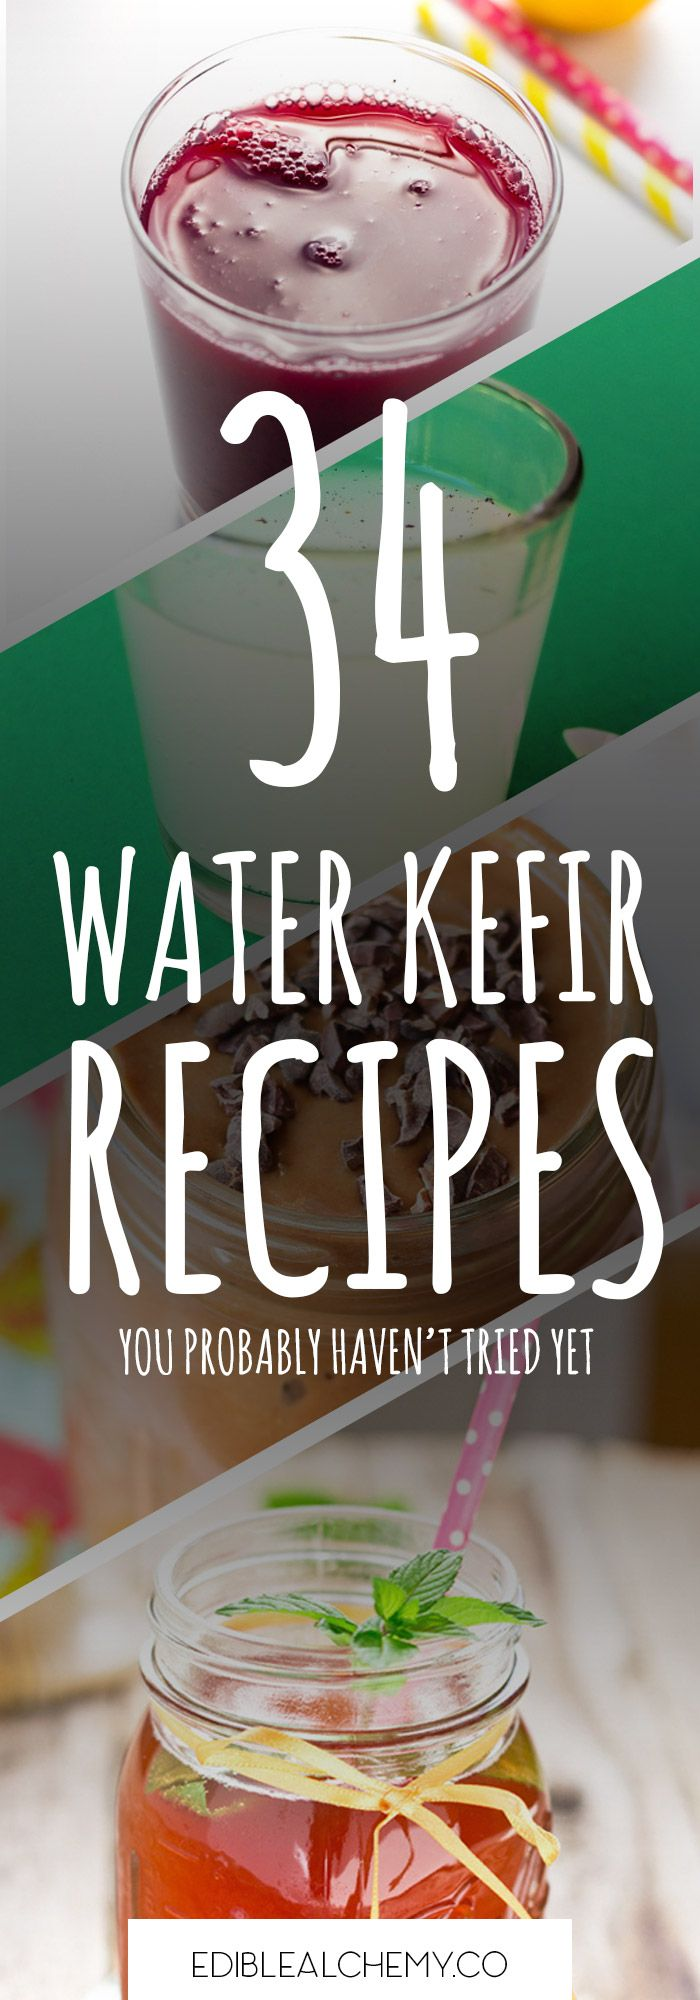 34 Water Kefir Recipes You Probably Haven't Tried Yet